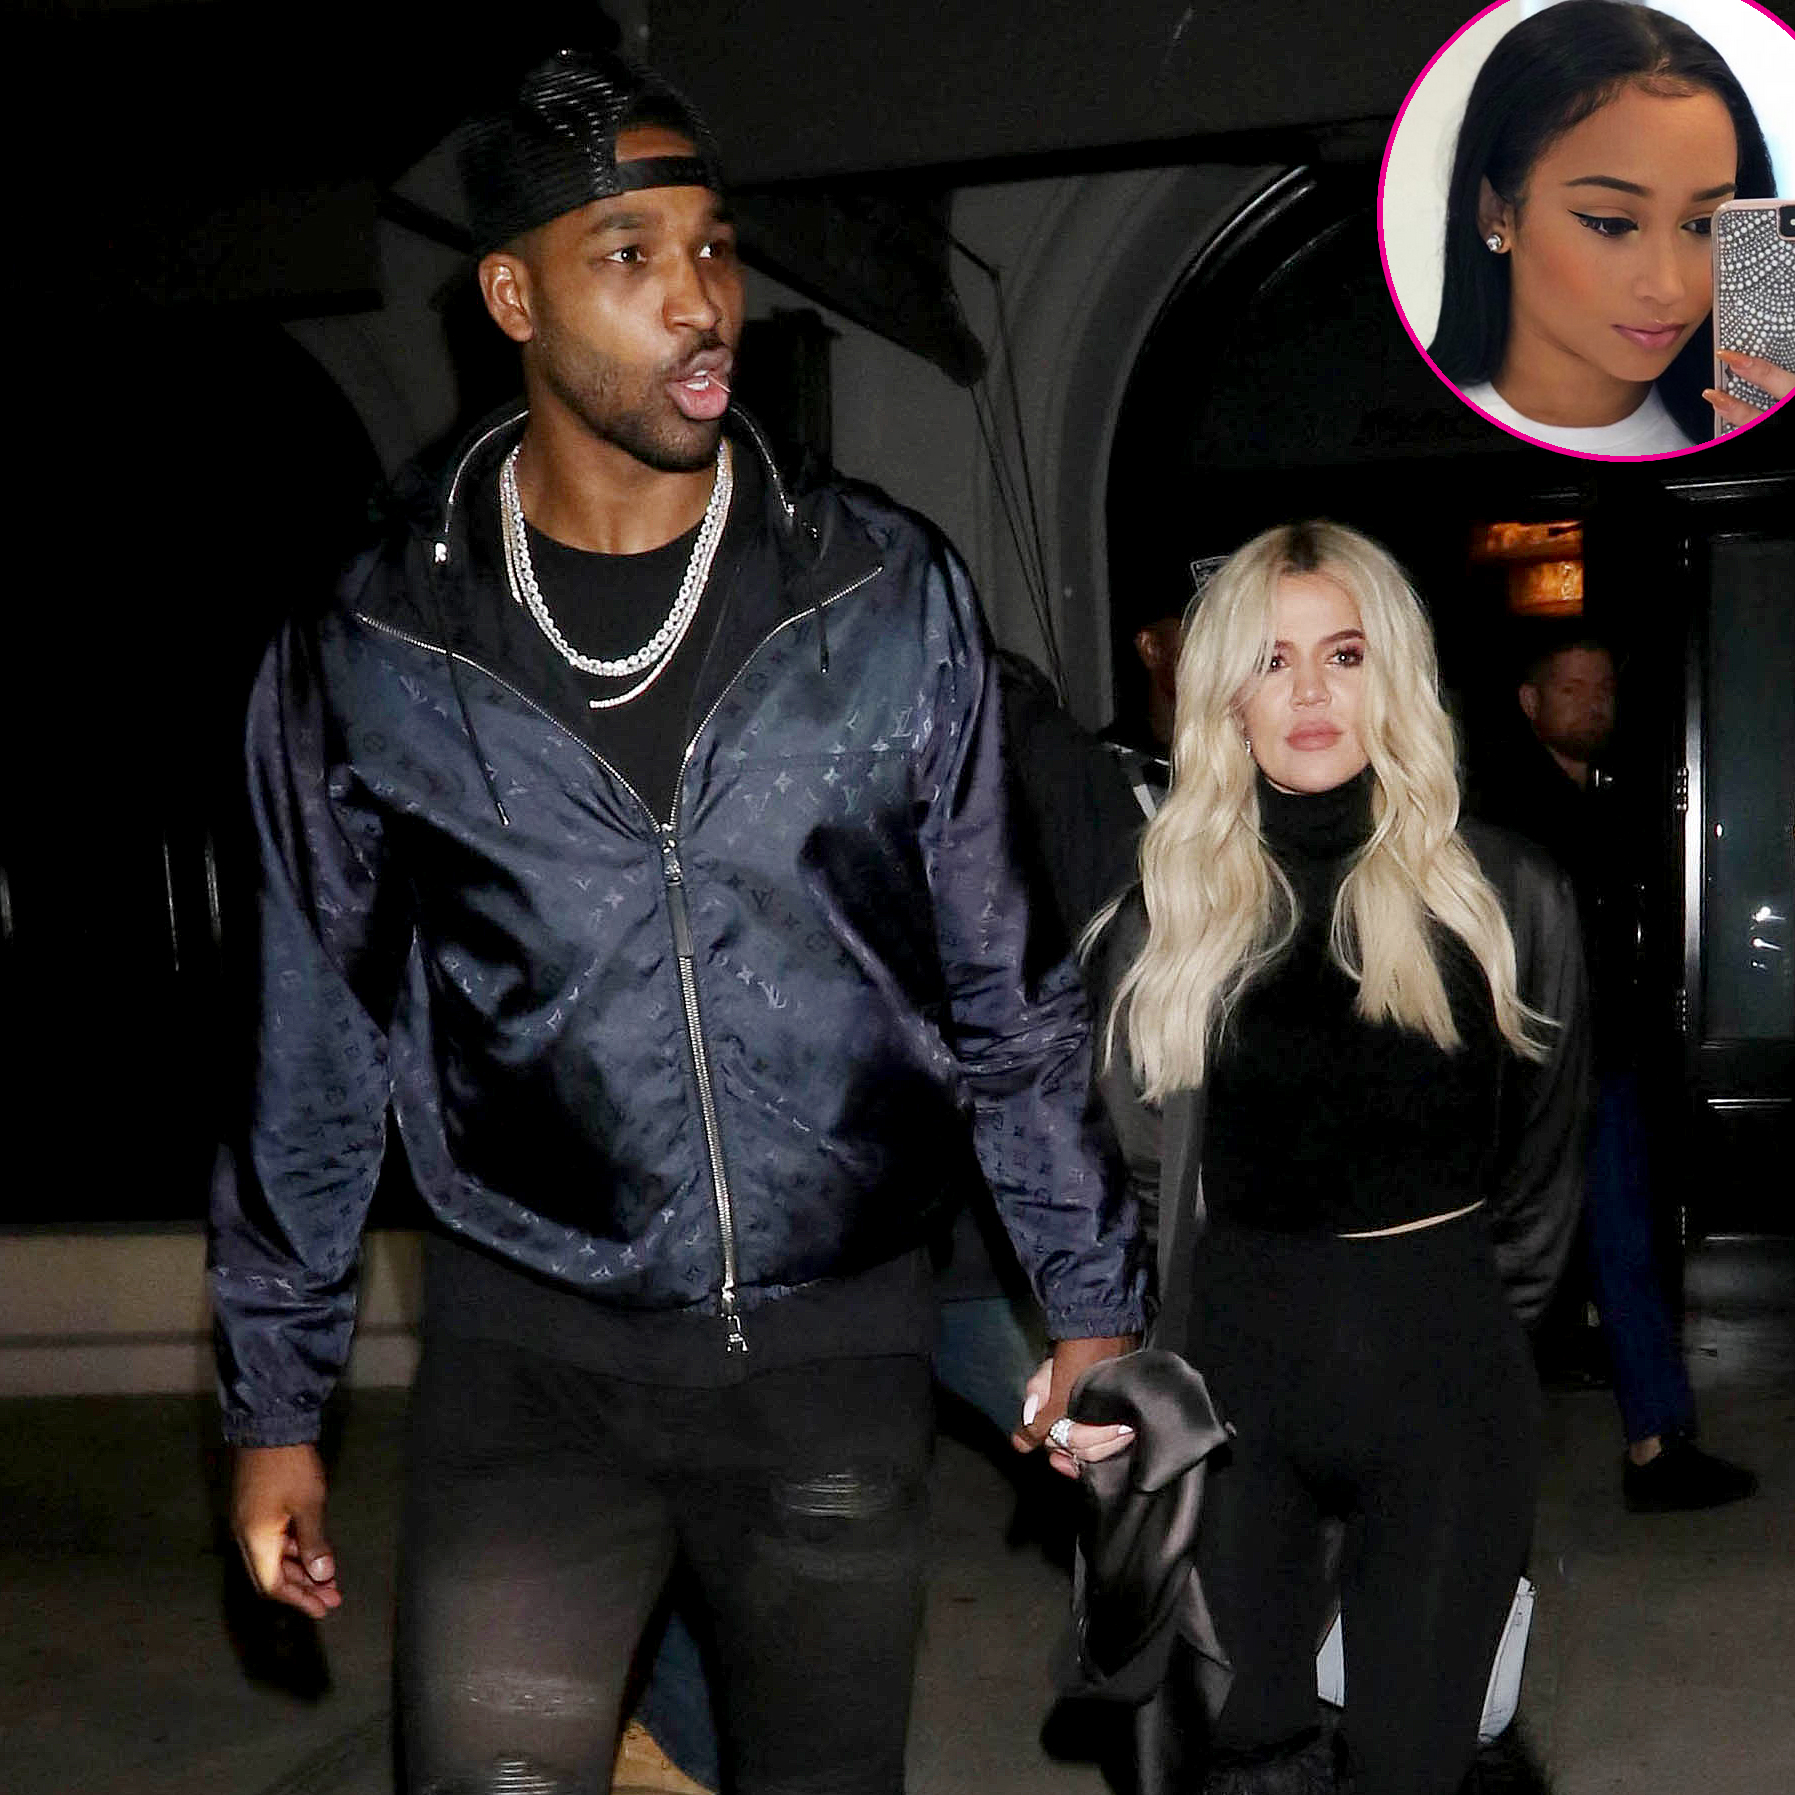 Tristan-Thompson-Ex-Jordan-Craig-Accused-Him-Of-Spending-Thousands-on-Khloe-Kardashian-During-Child-Support-Battle